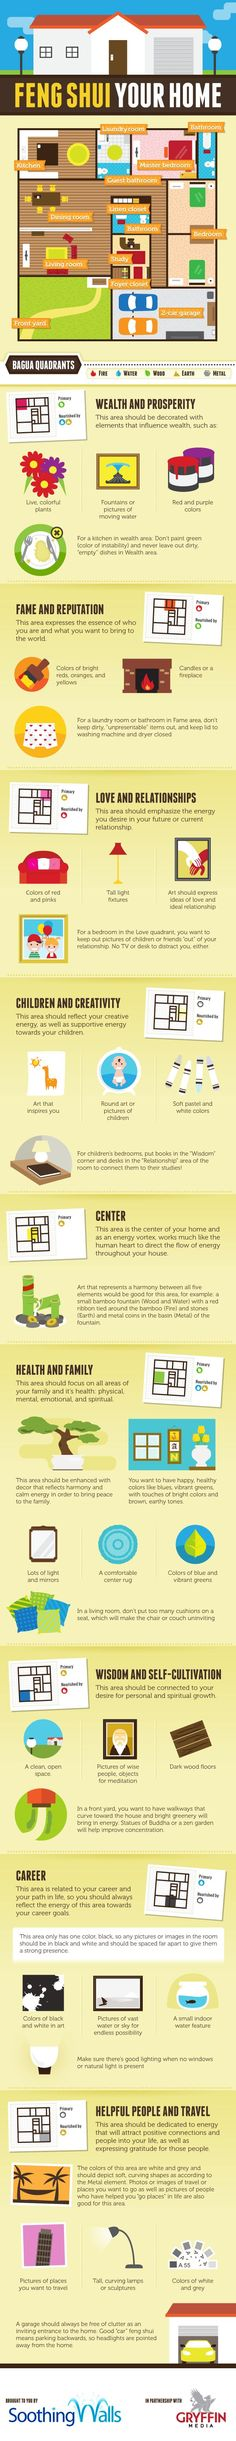 Feng Shui Your Home - these infographics are fun!